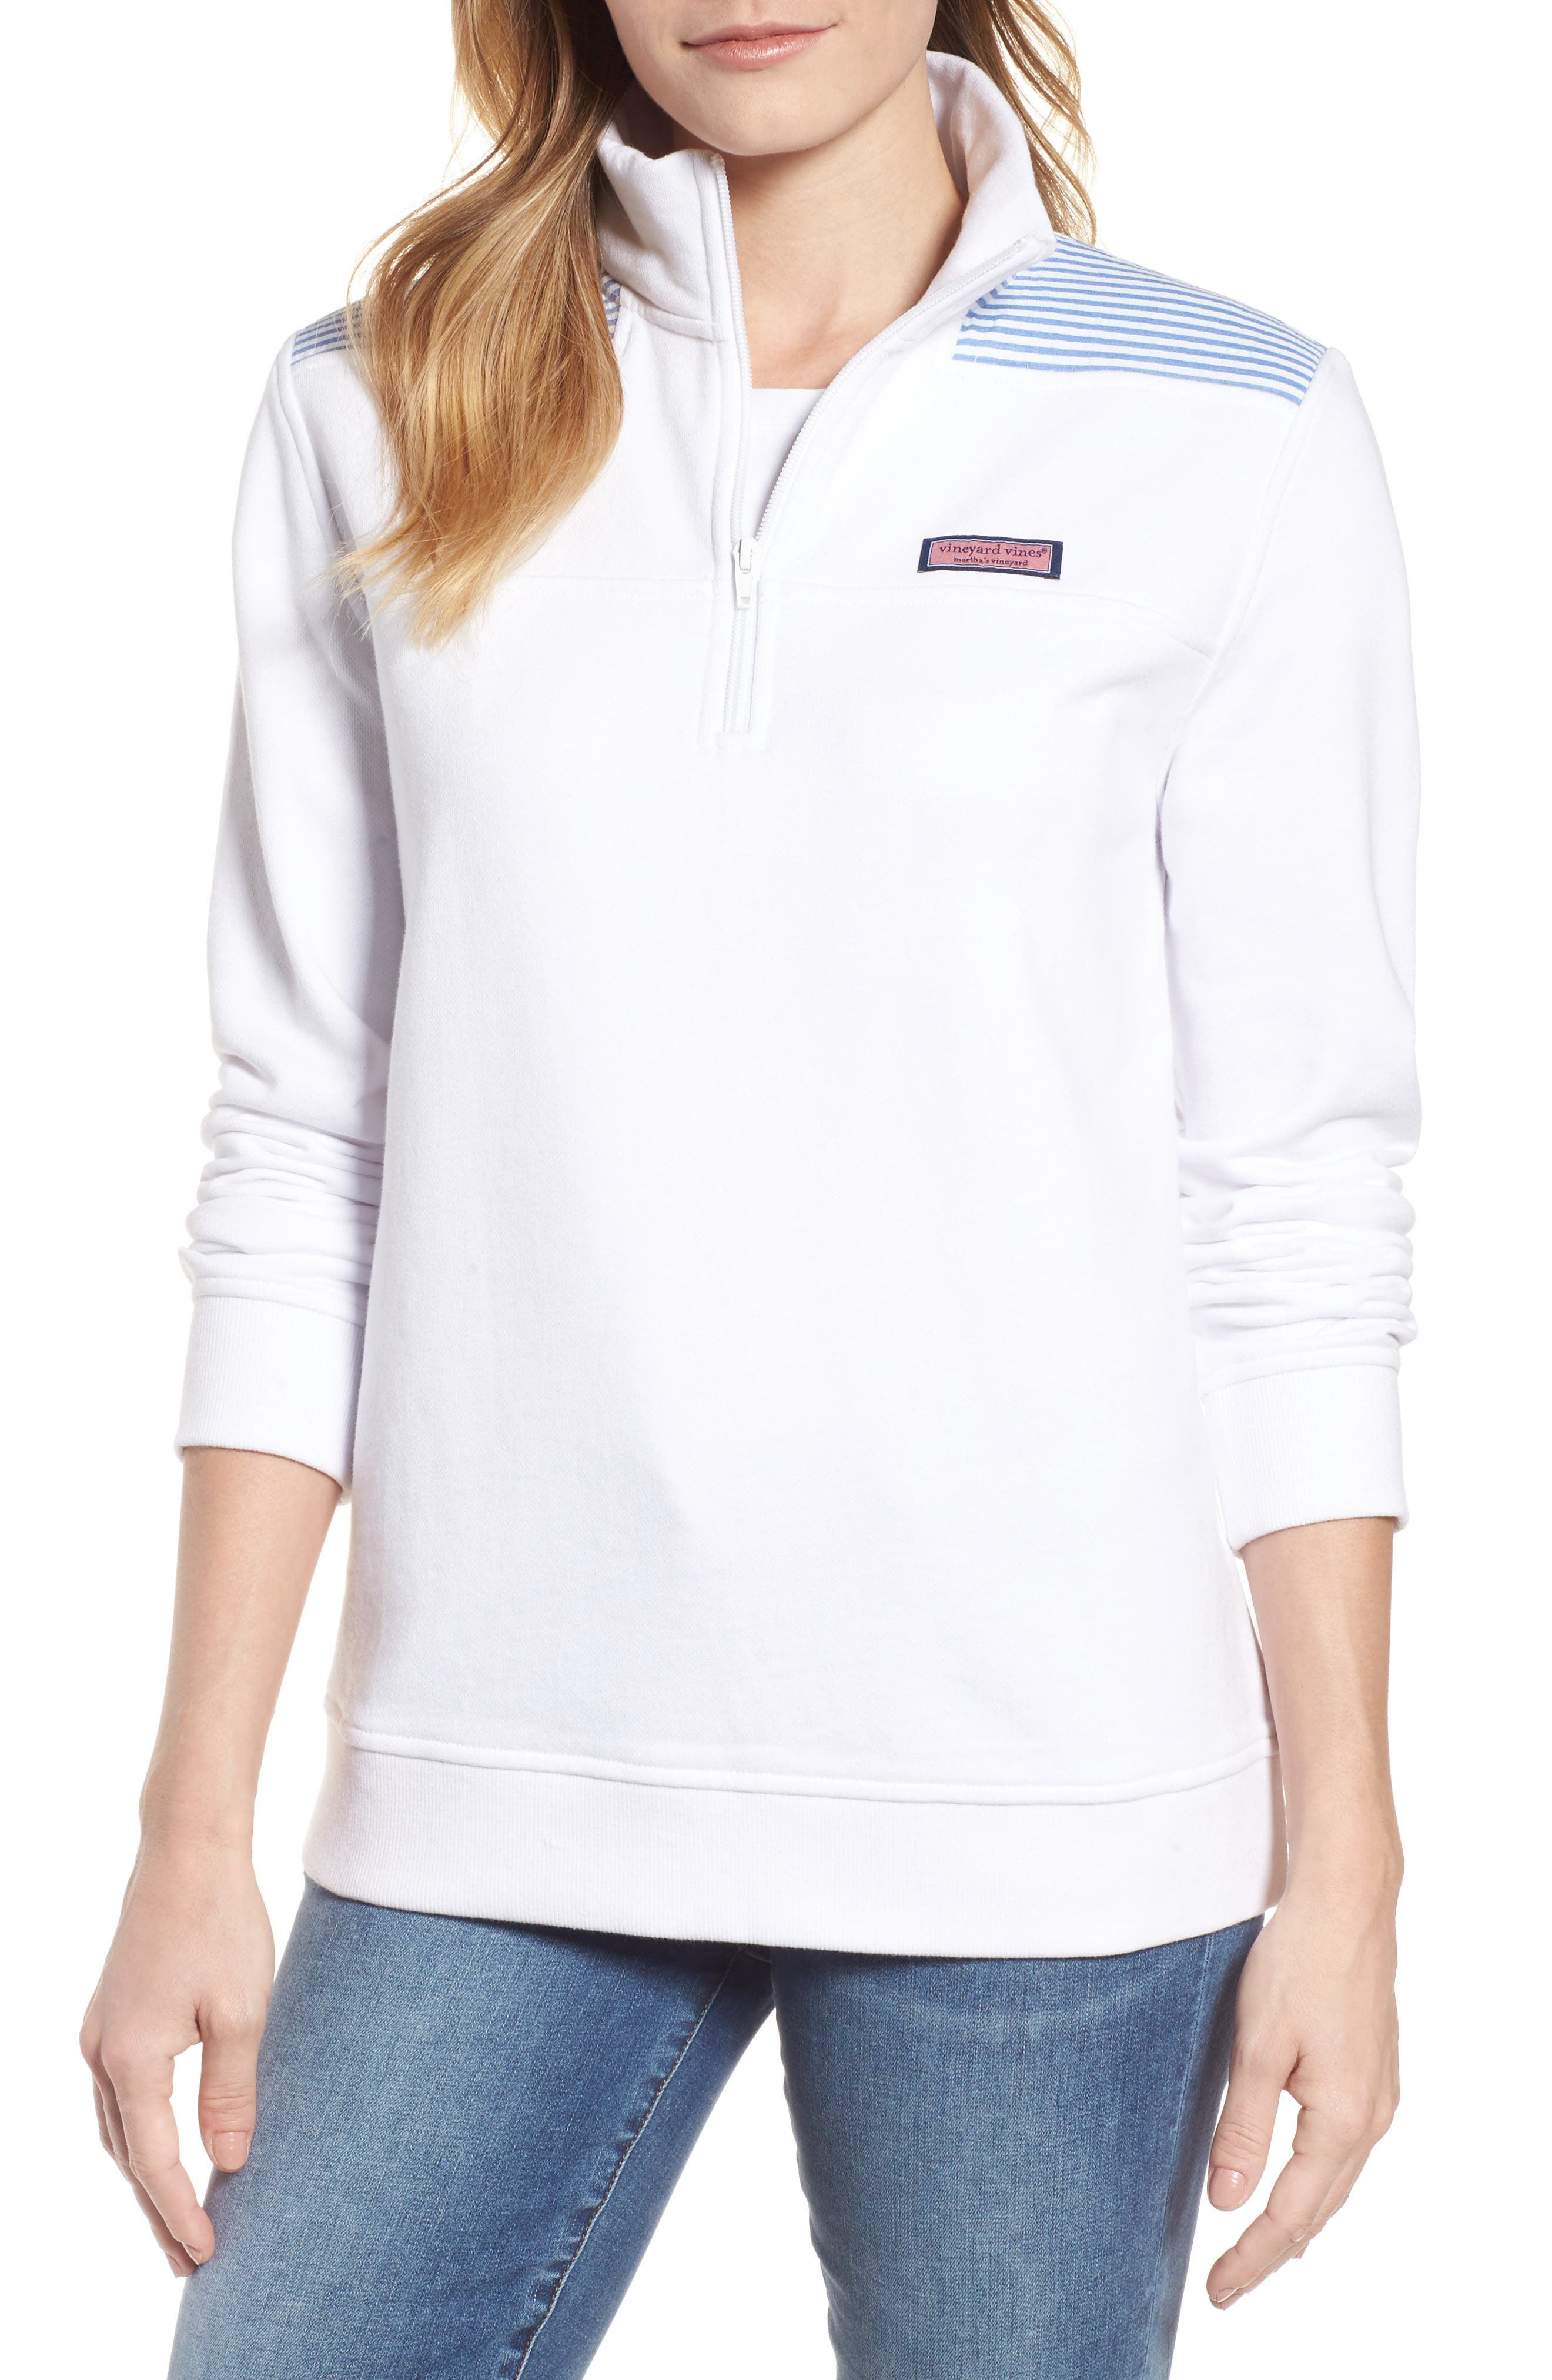 Main Image - vineyard vines Shep Quarter Zip Pullover